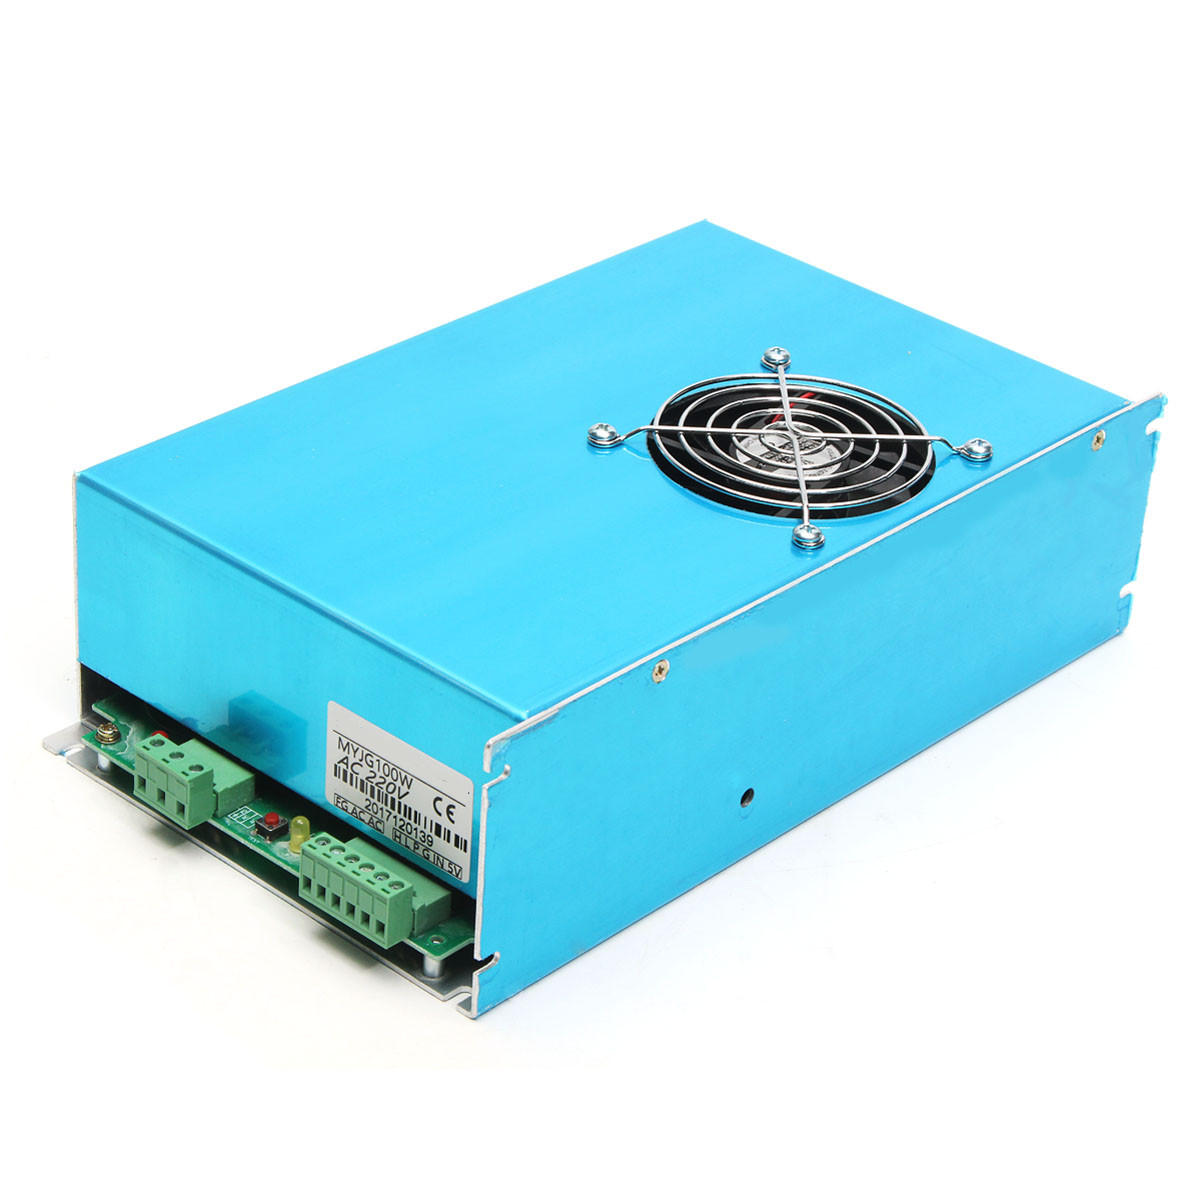 In Style; Hy-t60 Laser Power Supply For Mini Wood Engraving Machine Fashionable